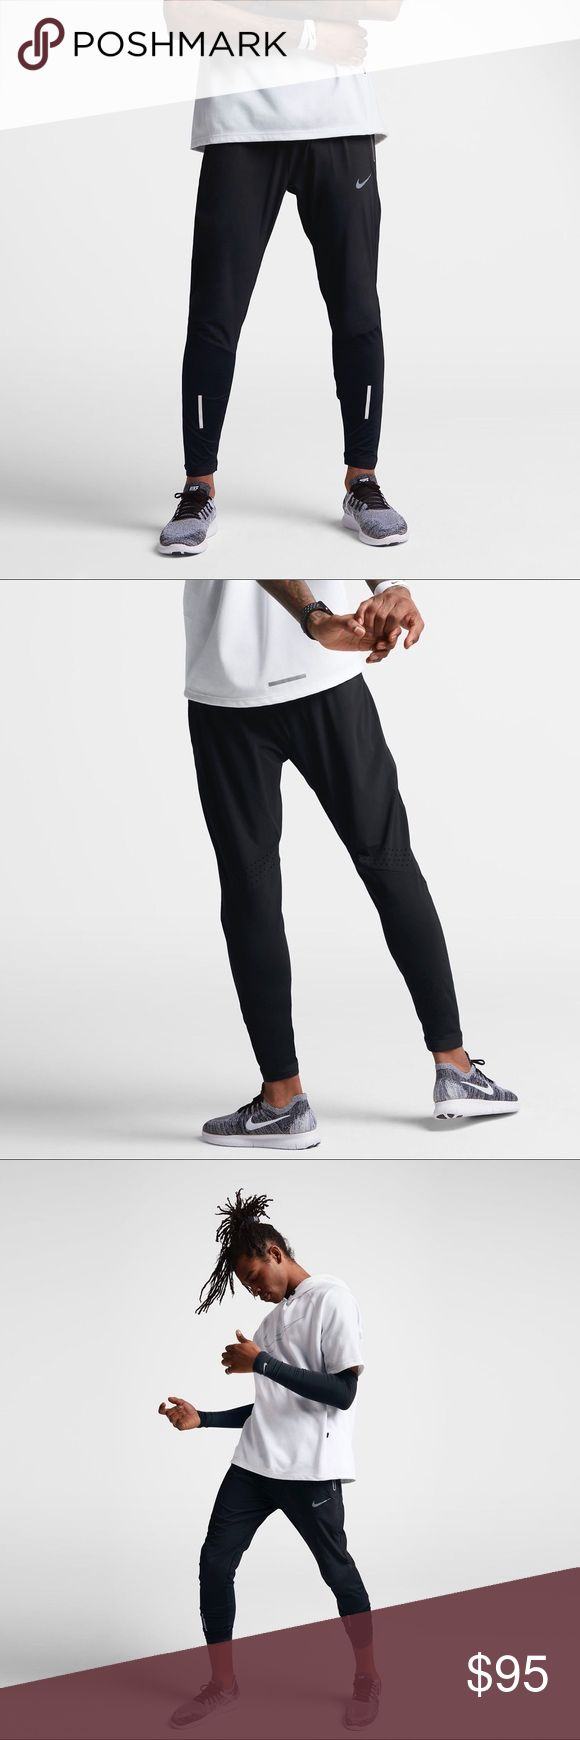 """MENS NIKE SWIFT 27"""" RUNNING PANTS 